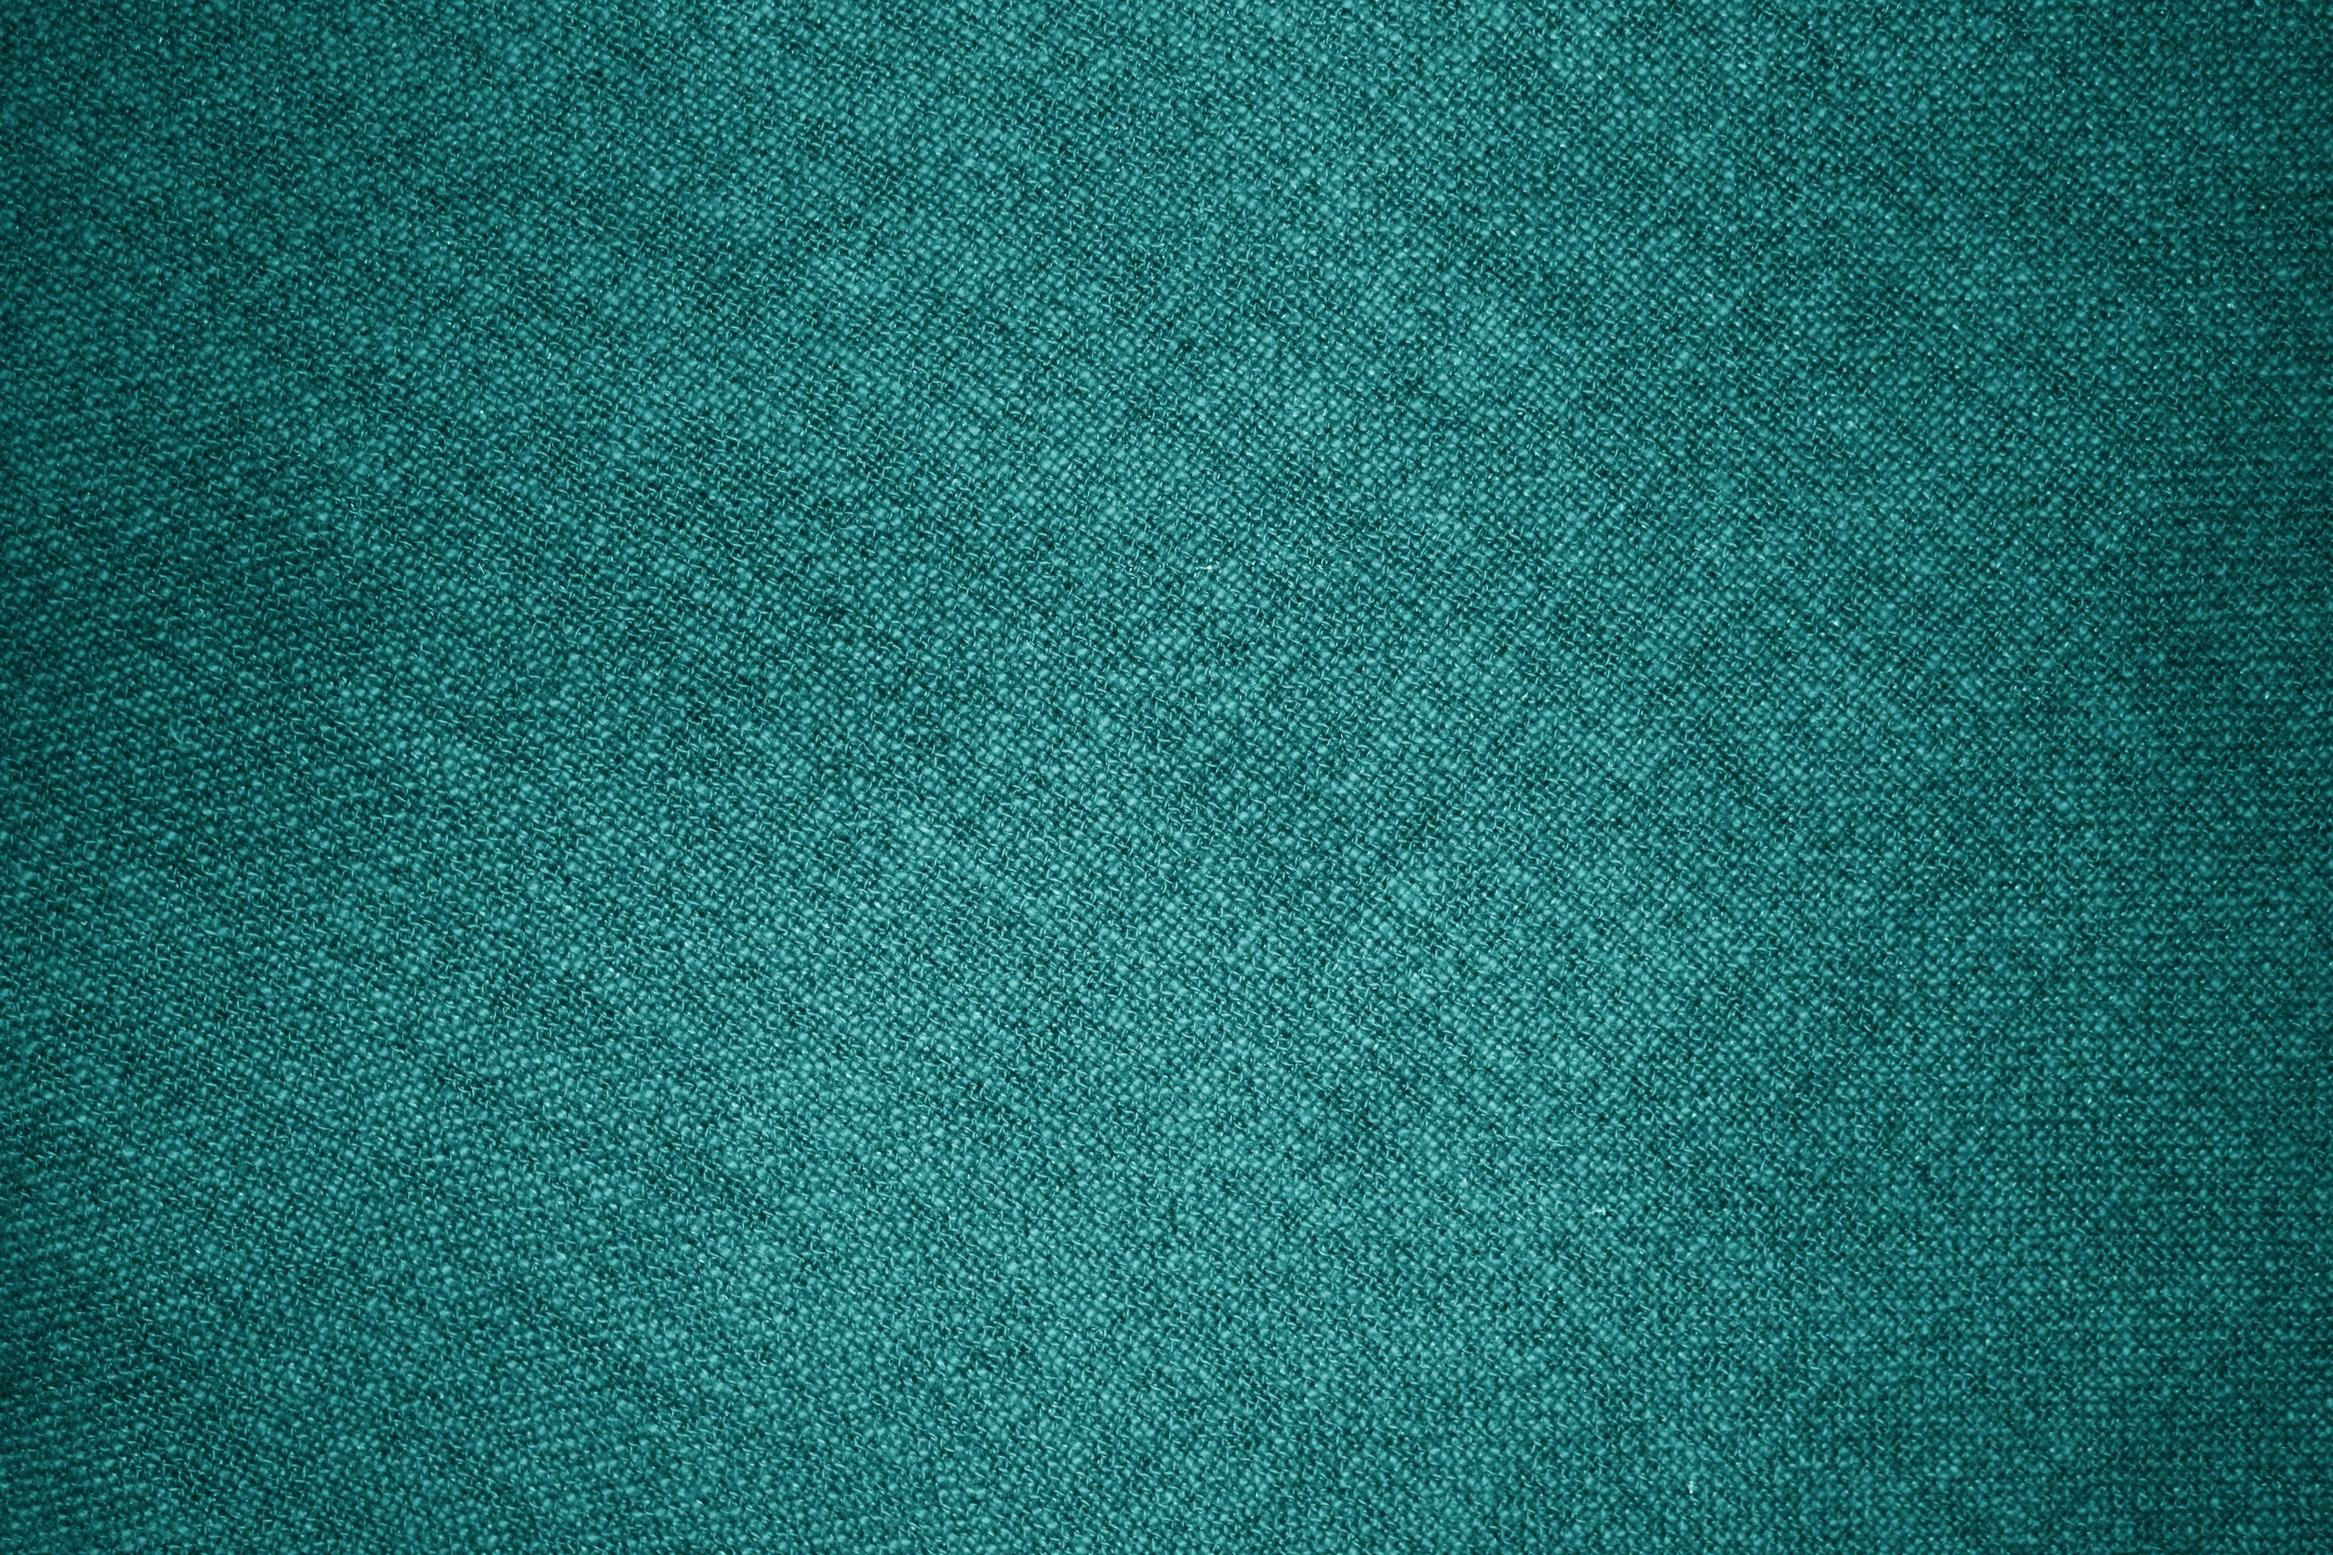 2333x1555 Collection of Teal Widescreen Wallpapers: 4327558,  px